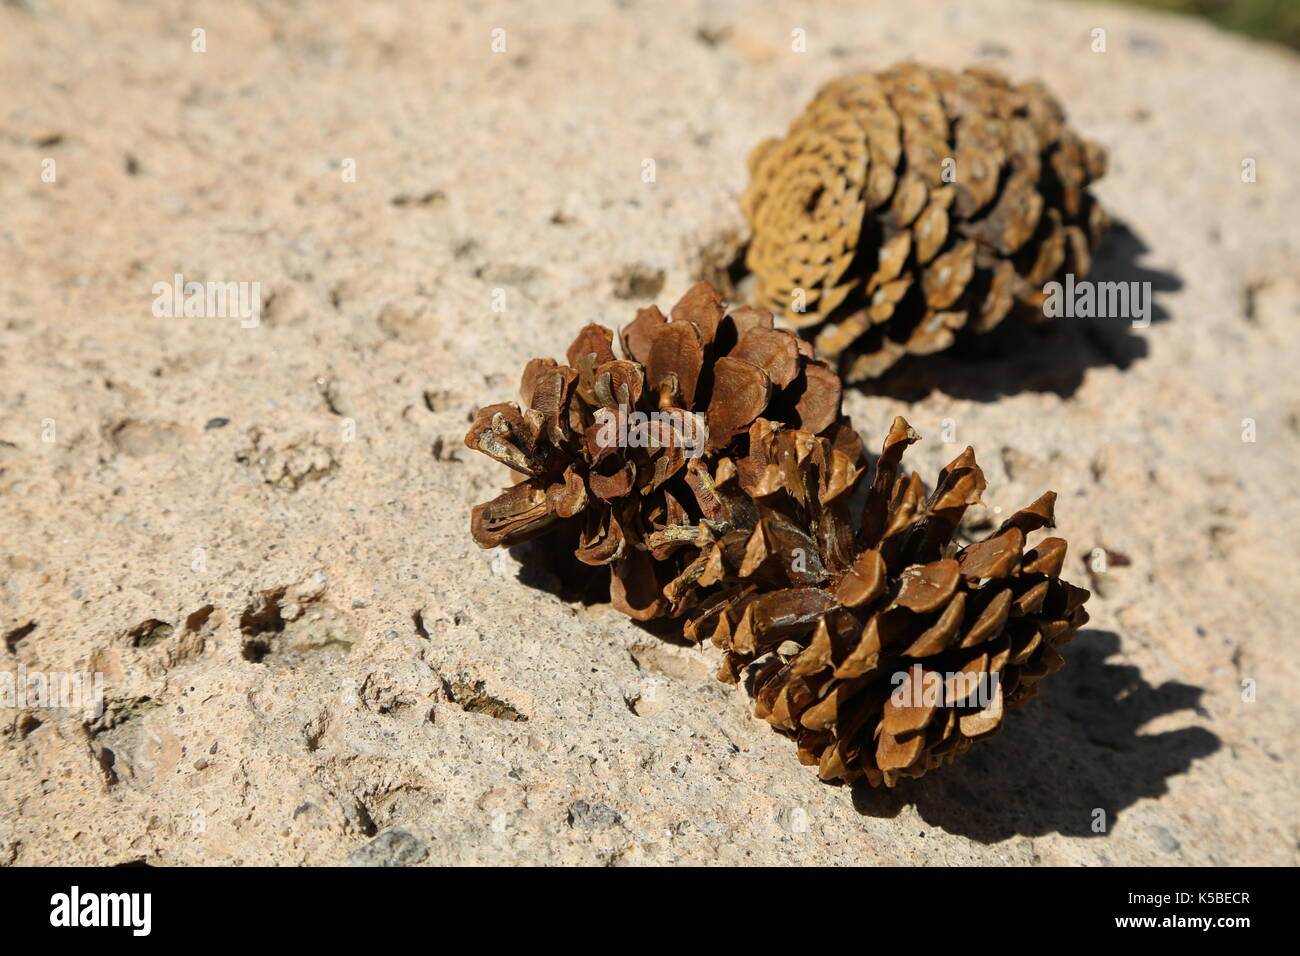 Pinecones on a Rock - Stock Image